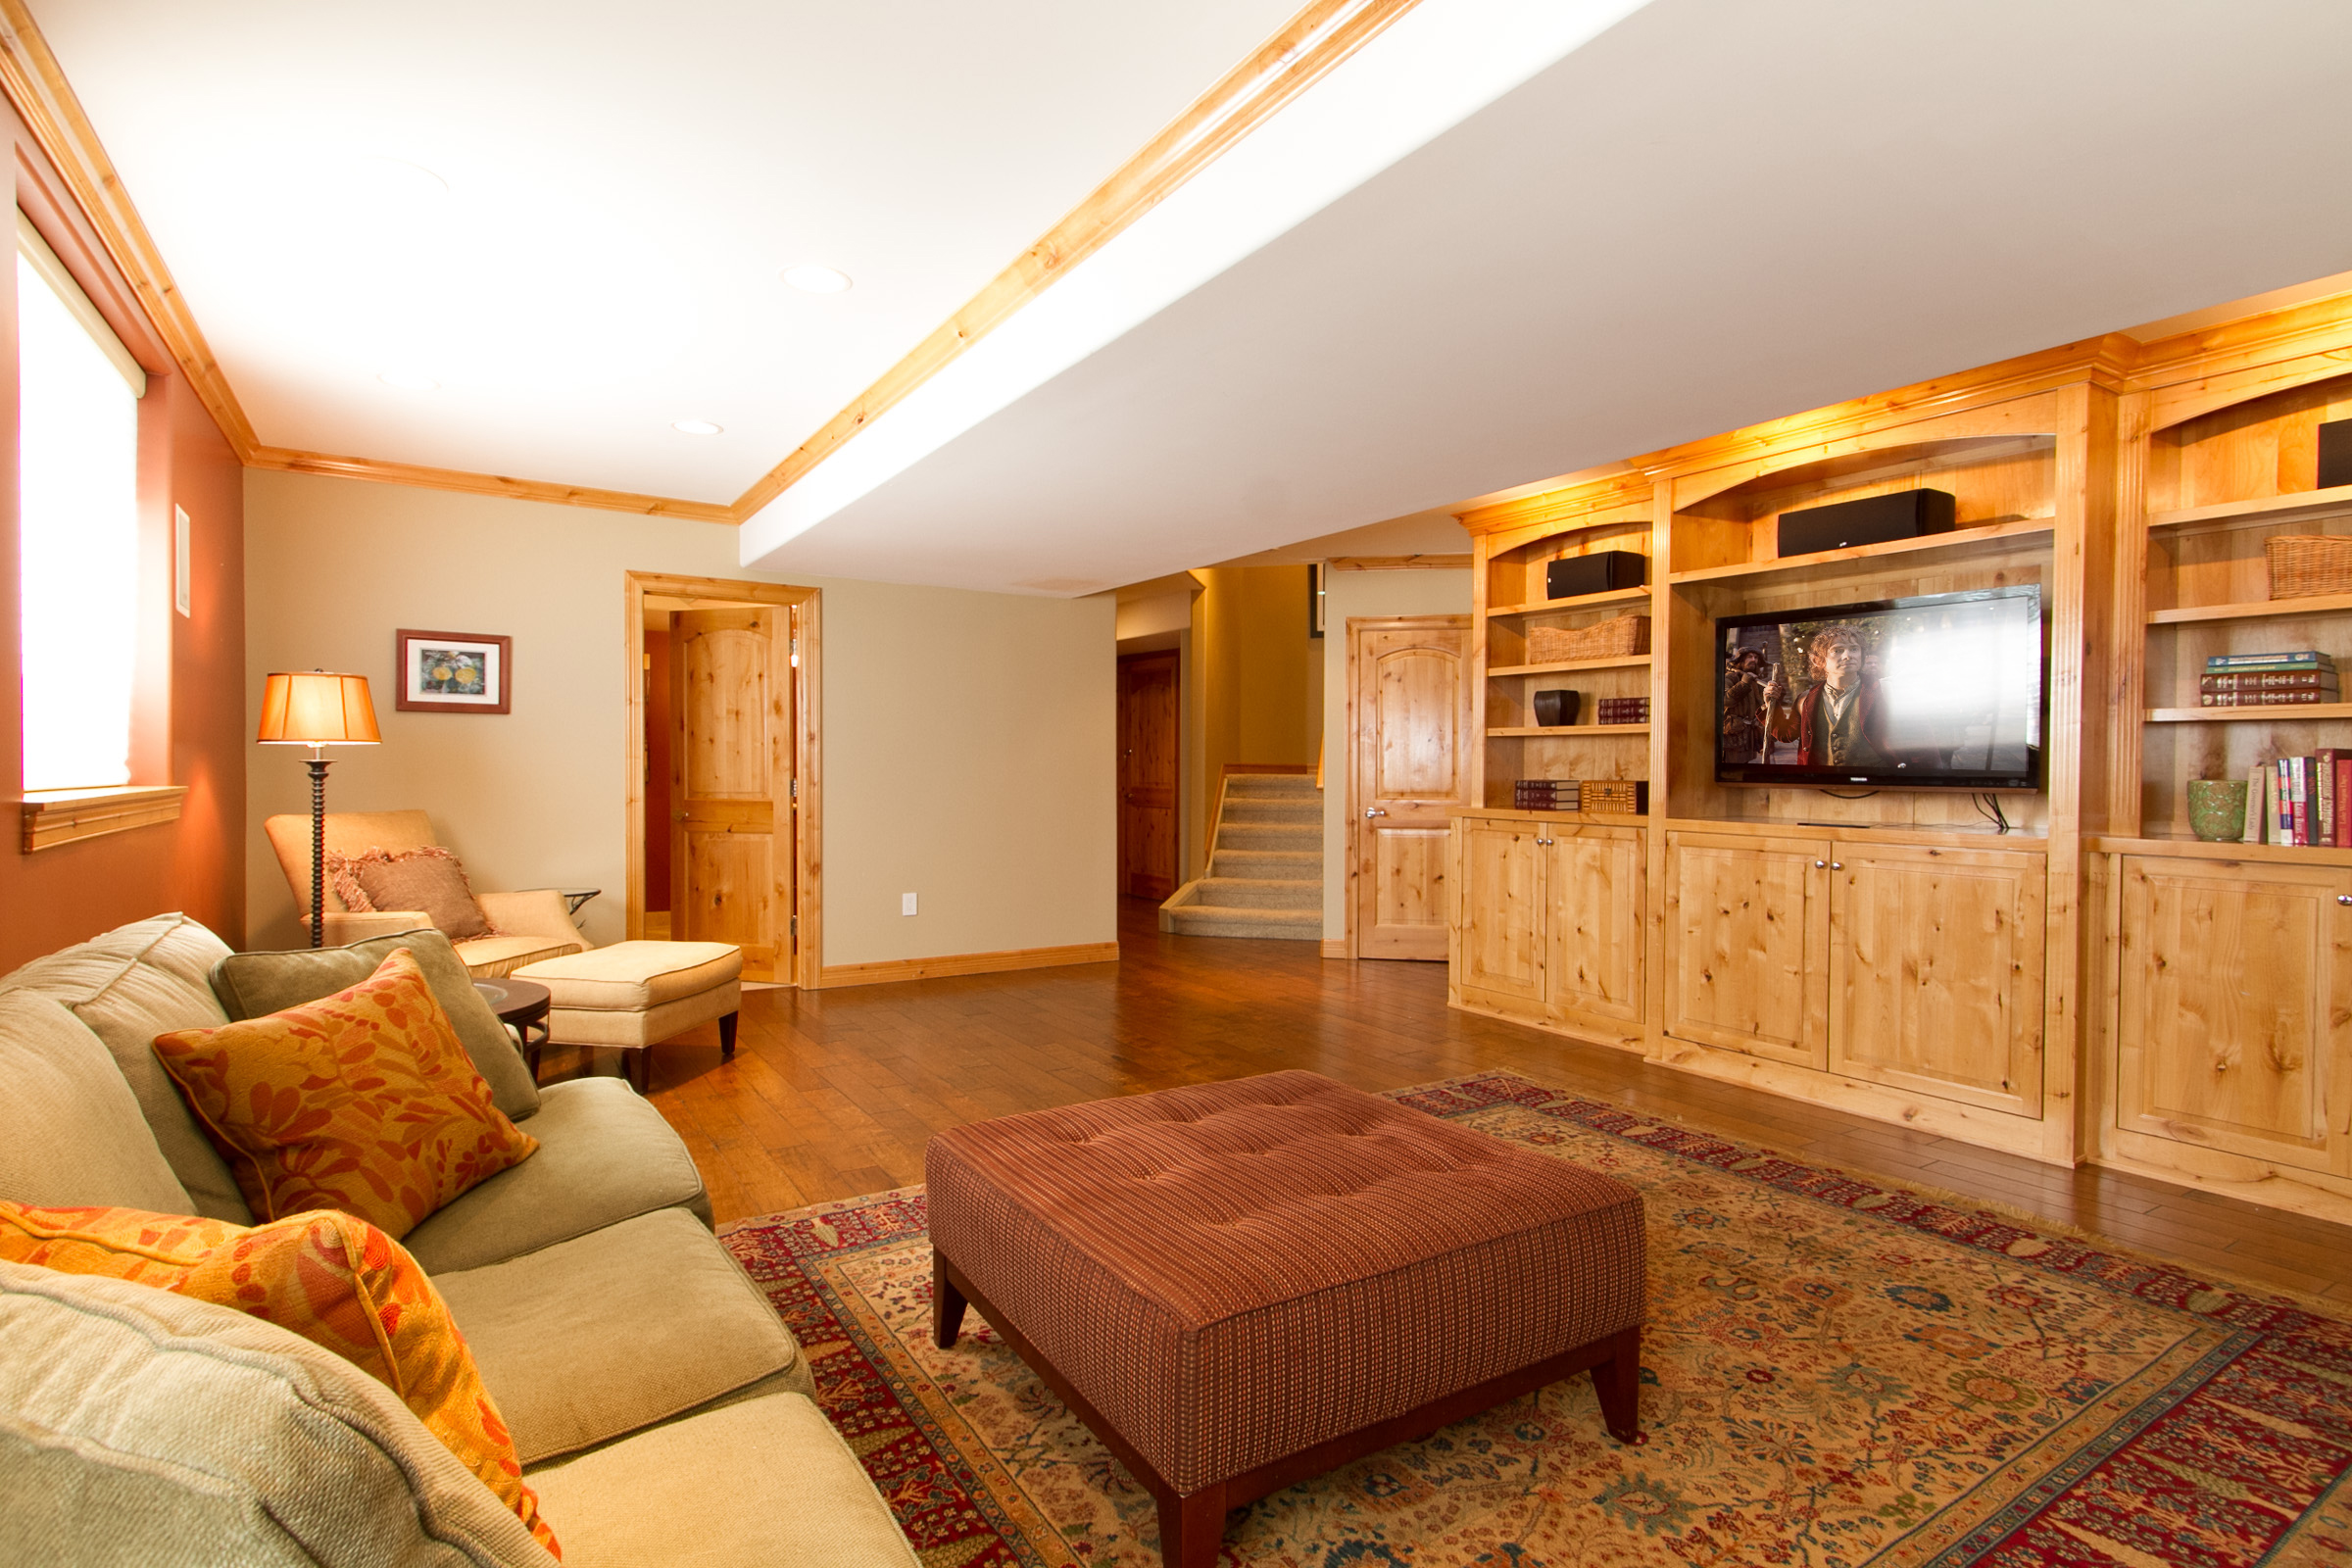 1368085_Basement-Media-Room-With-Built-ins_high.jpg